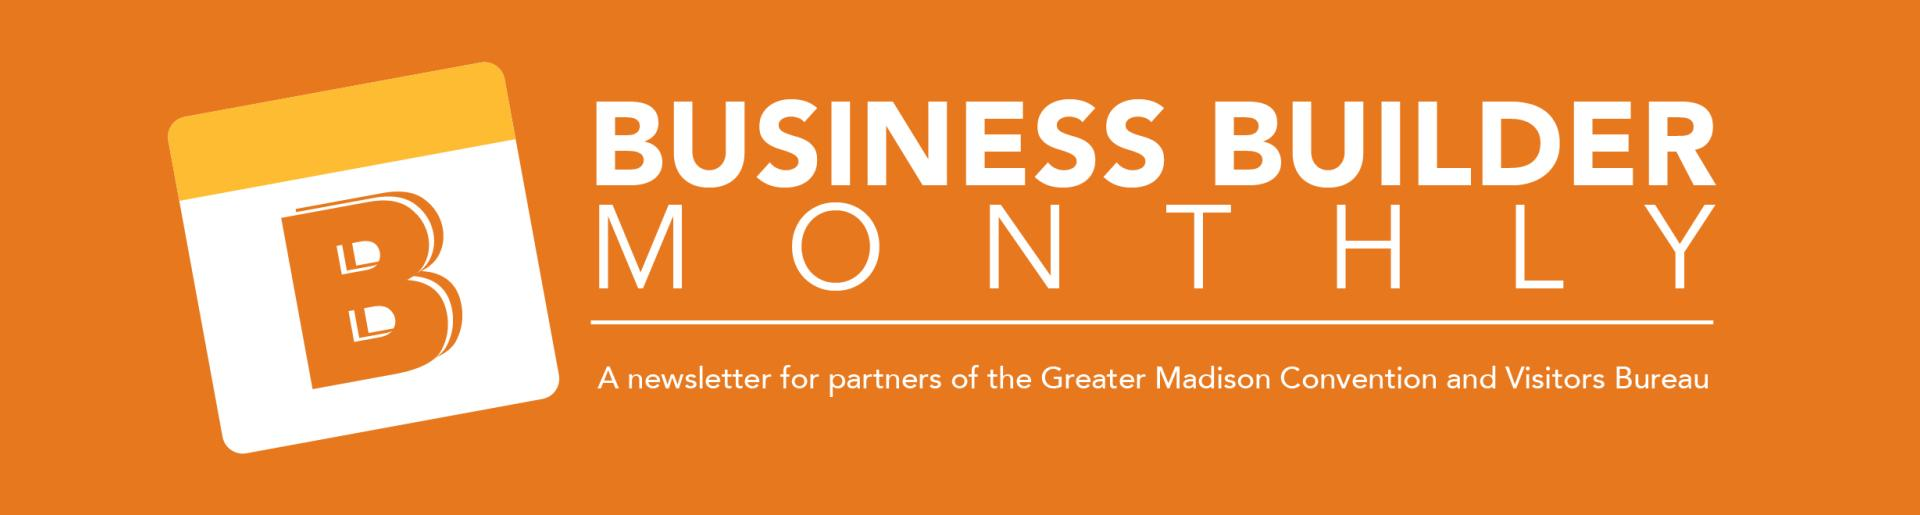 Business Builder Monthly